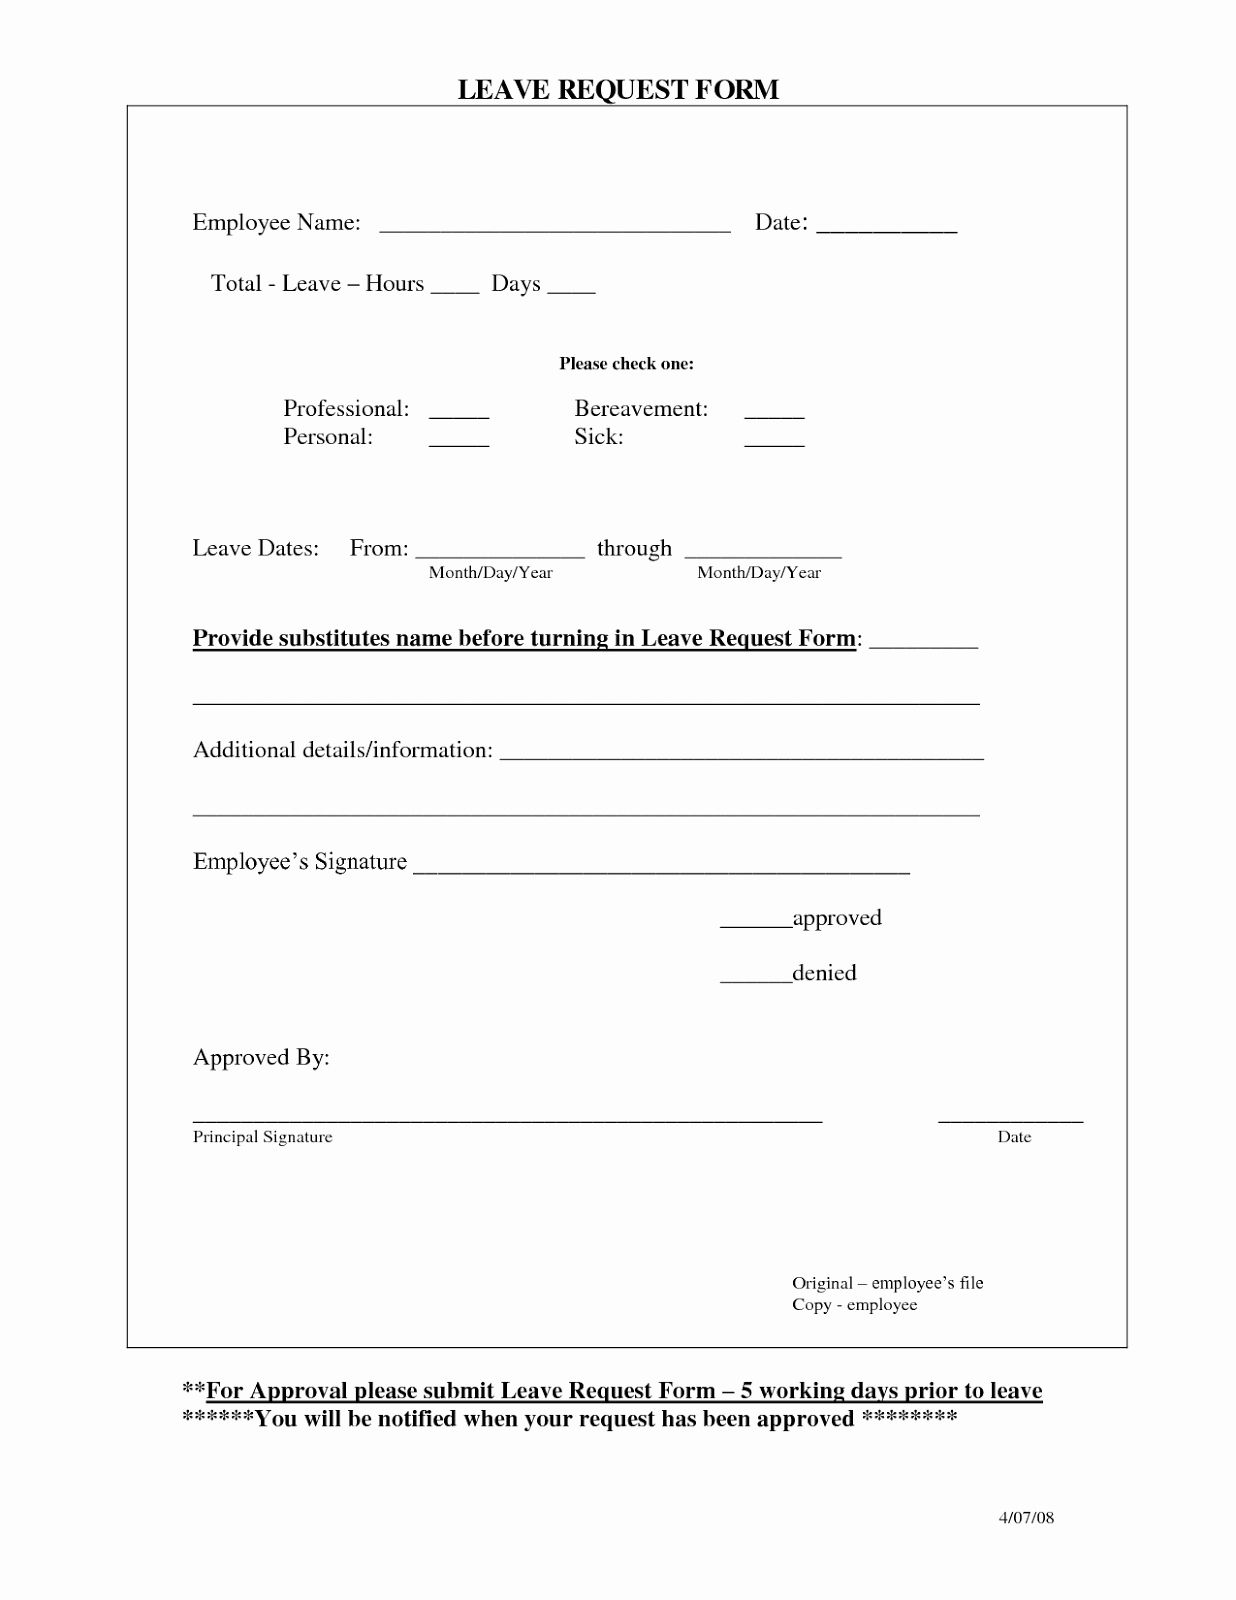 Employee Requisition Form Template Unique Employee Time Off Request From Template Excel Template Time Off Request Form Letter Format Sample Form Time off request form template